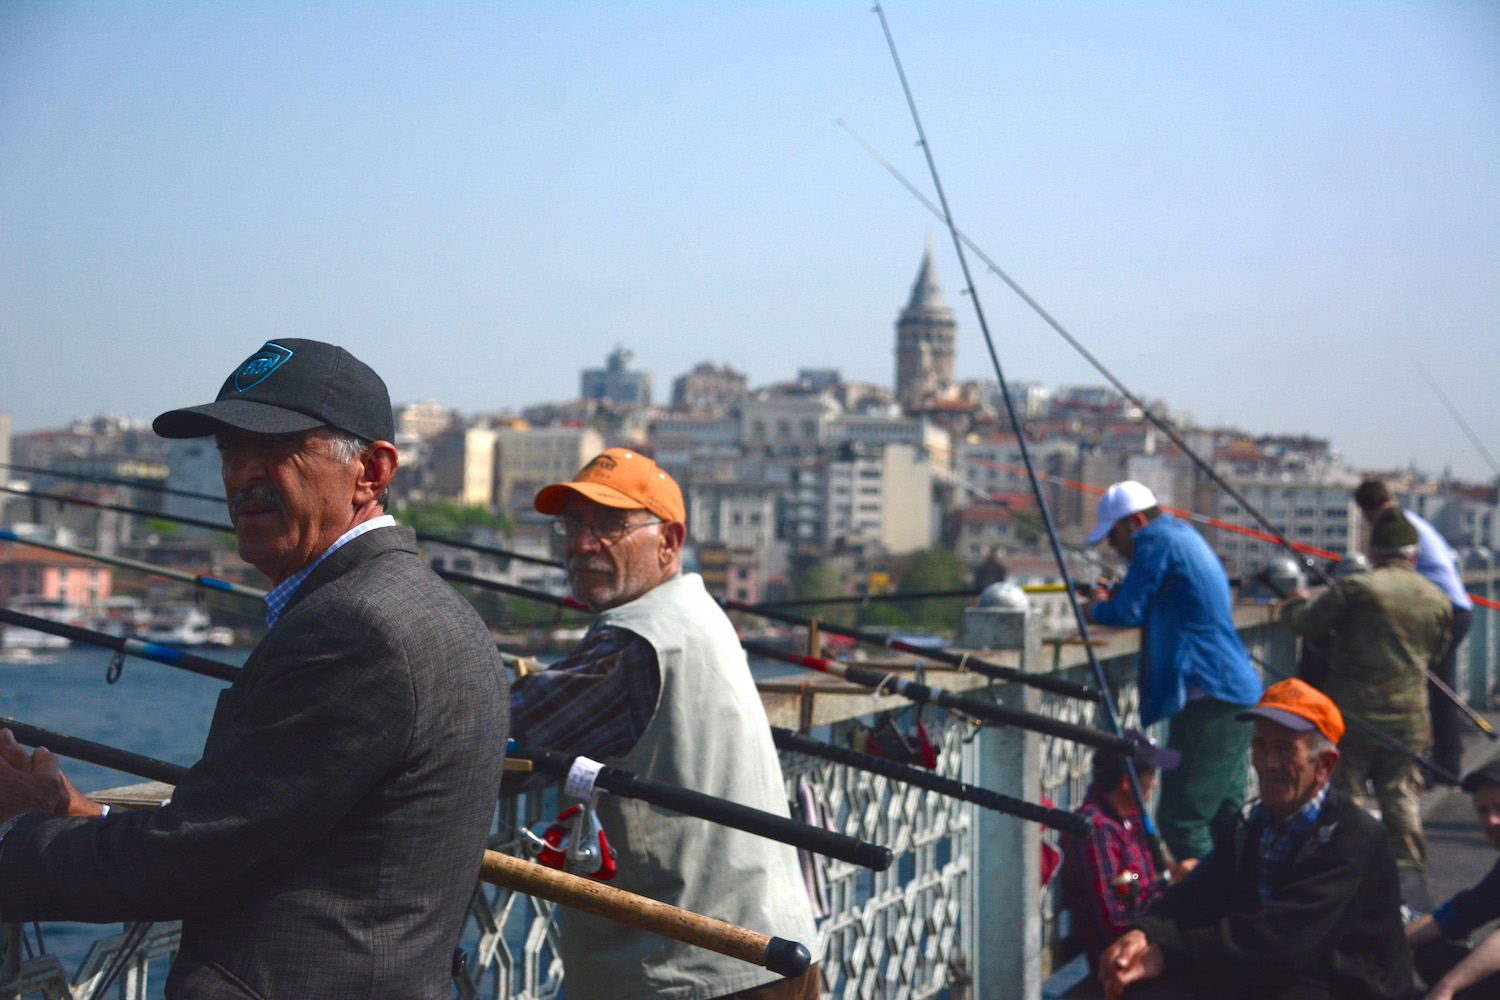 Fishermen on Atatürk Bridge in Istanbul